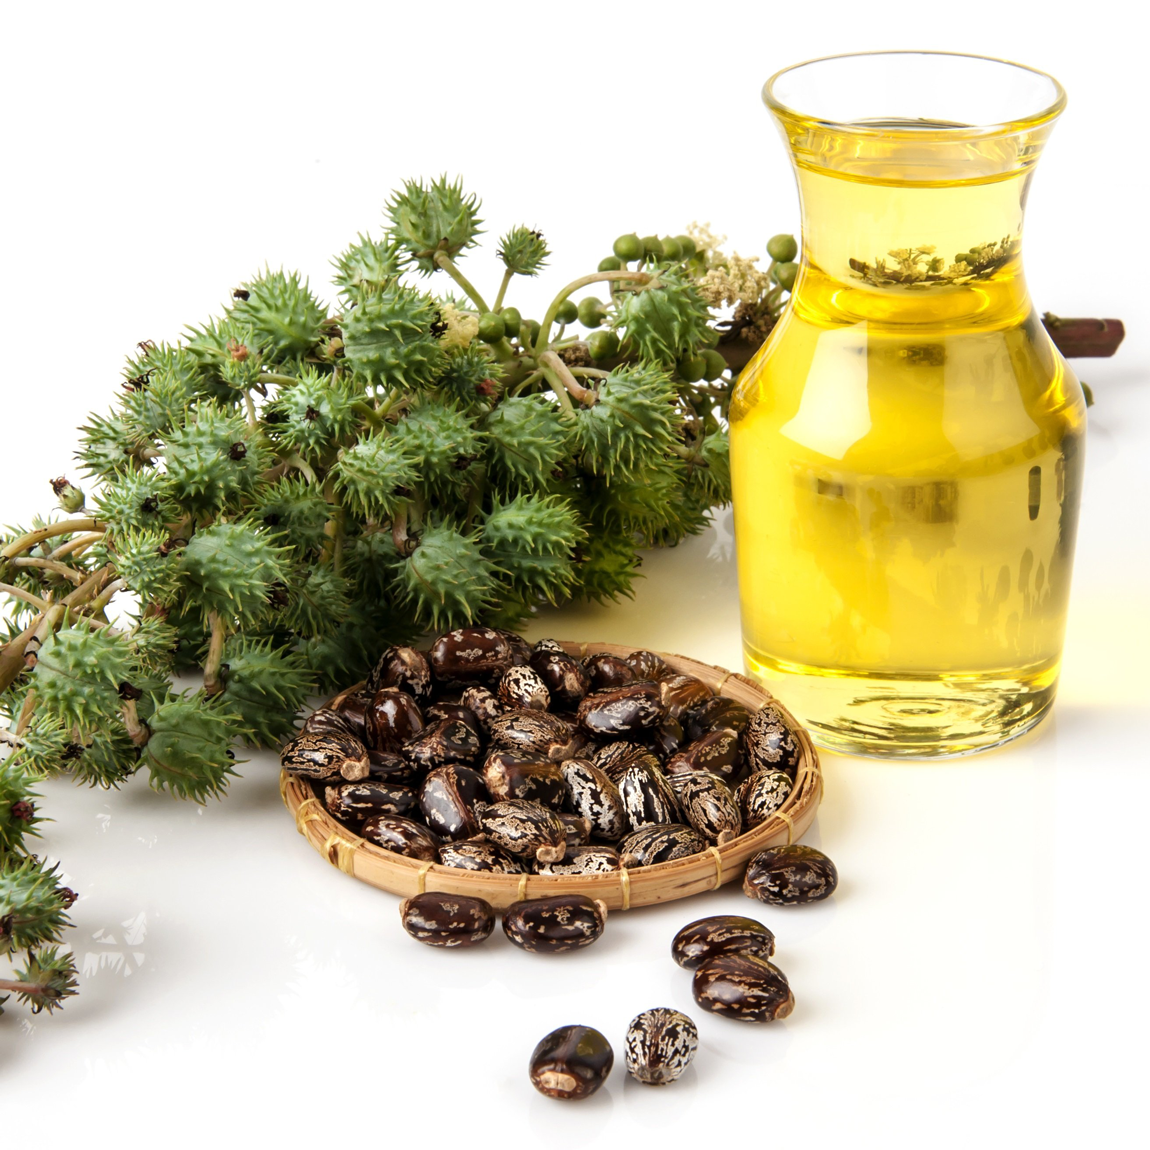 The beneficial properties of castor oil for skin and hair